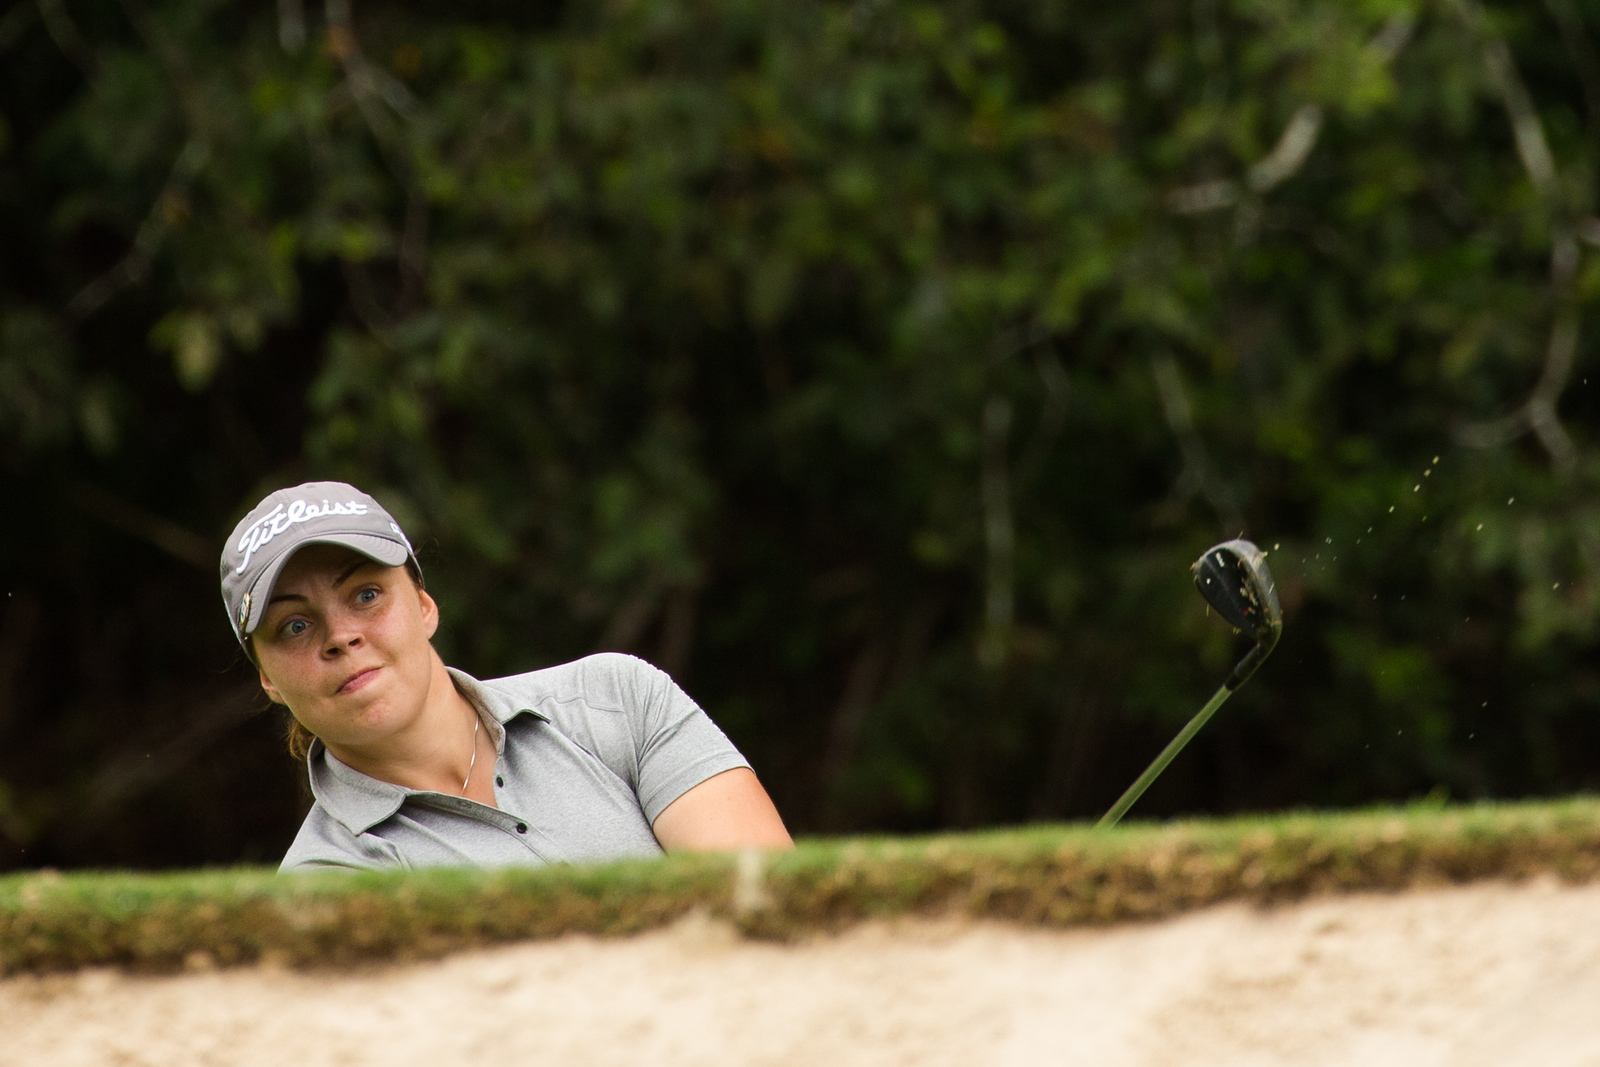 Valdis Jonsdottir of Iceland lines up a birdie chance on the 8th hole during the second round